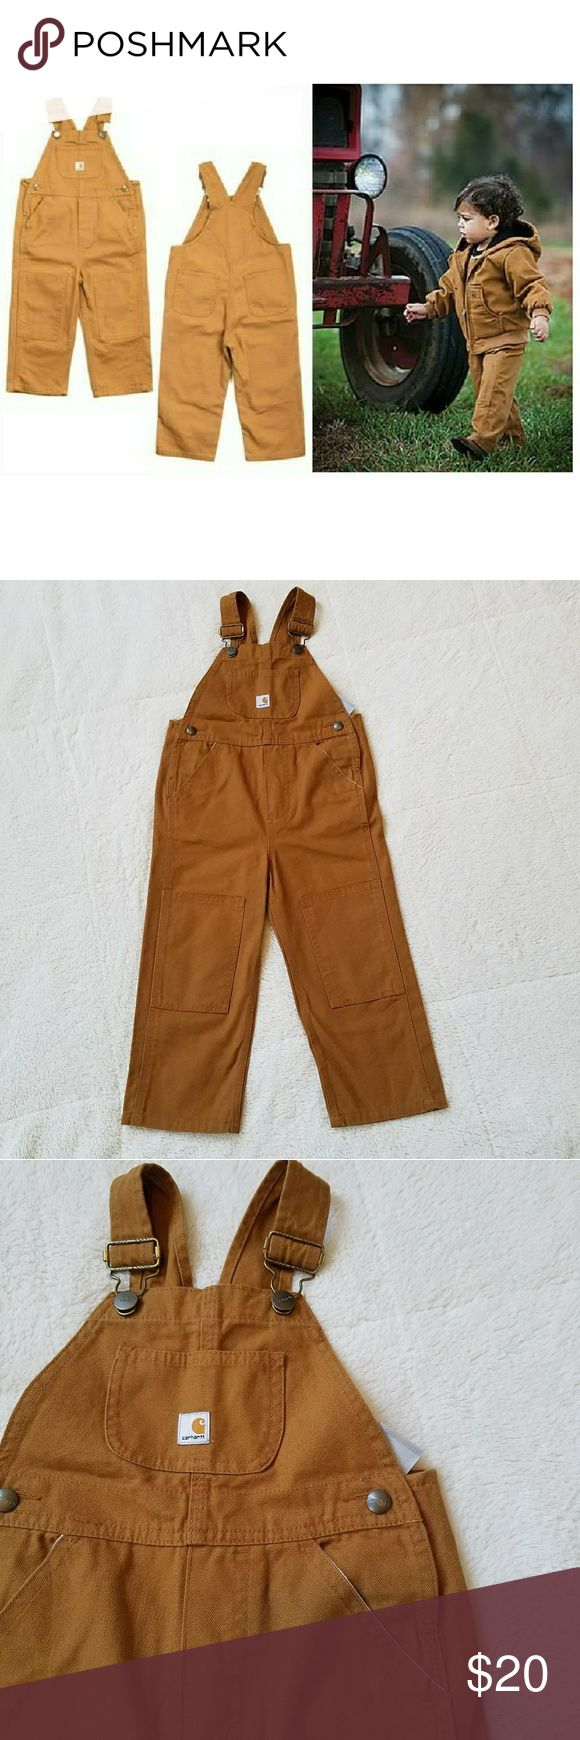 🆕🆕Kid's Carhartt Overalls Like New - worn once! 3T Carhartt Bib Overalls. Love these!! For Boys OR Girls! Carhartt Bottoms Overalls